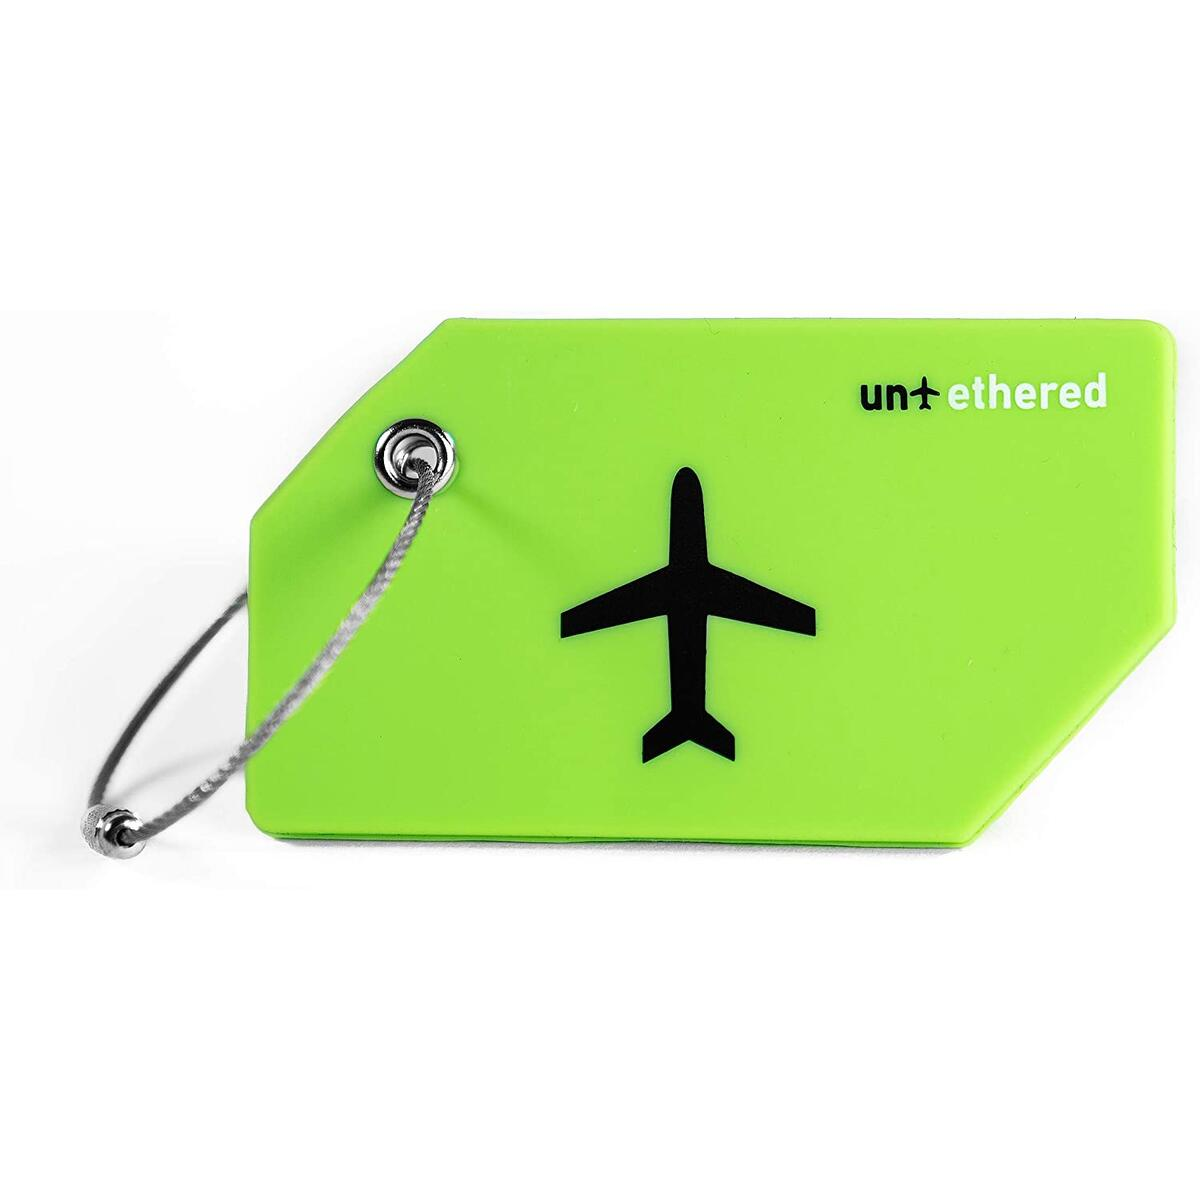 Untethered Luggage Tag Set | 4 Pack Flexible & Bright Silicone Baggage Tags for Travel & Suitcases. Includes Name Cards with Partial Privacy Cover & Stainless Steel Loops for Secure Fastening